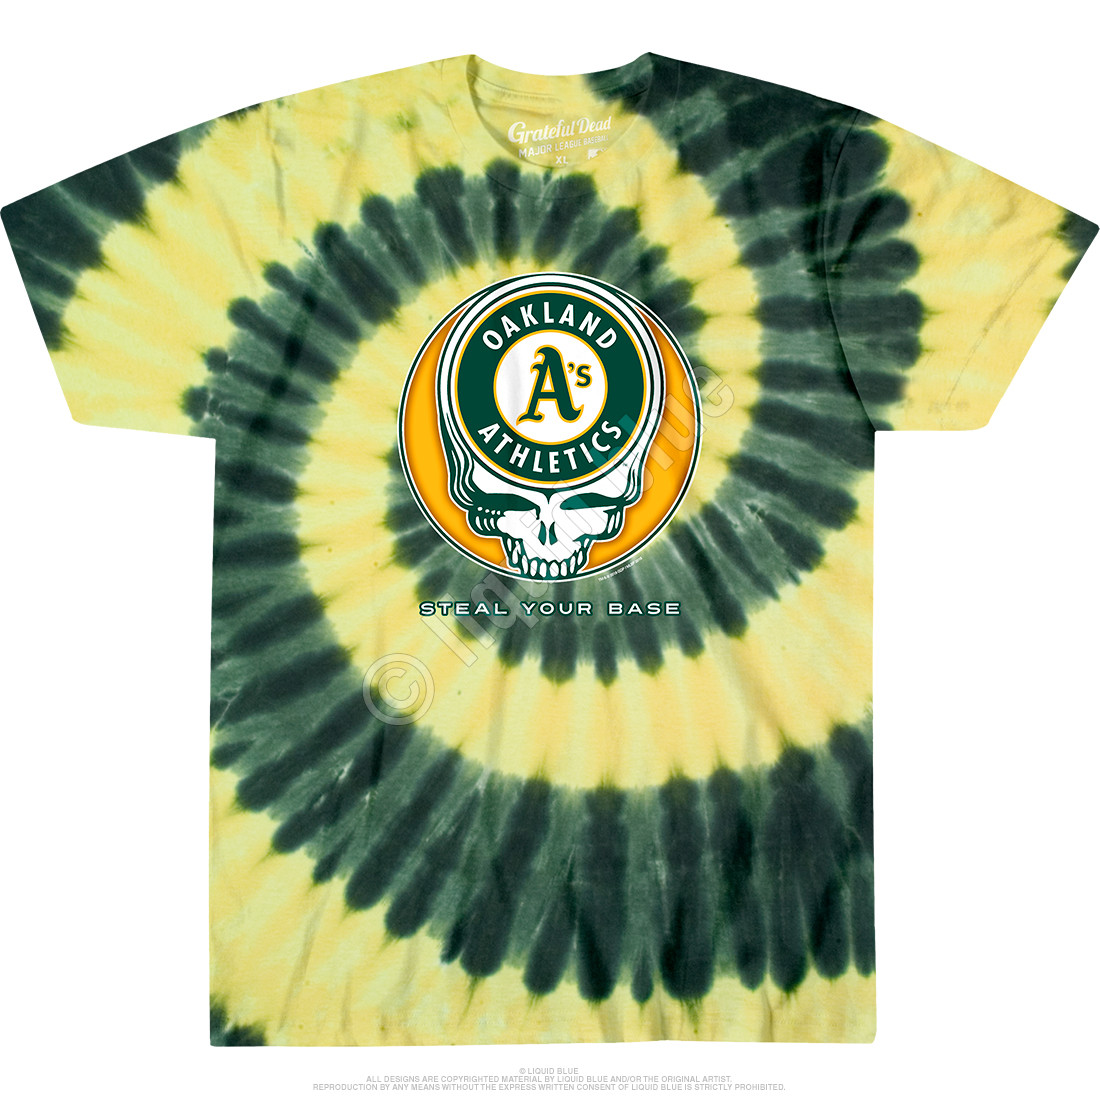 Oakland Athletics Steal Your Base Tie-Dye Tie-Dye T-Shirt